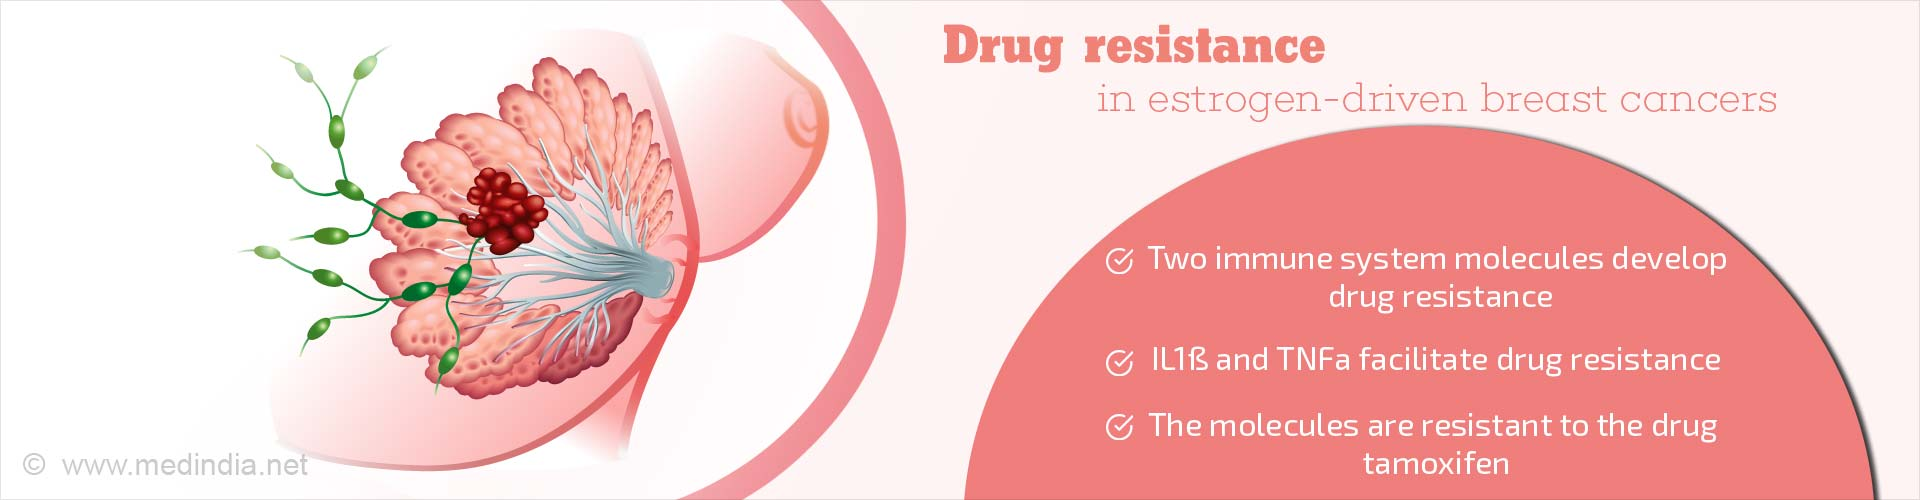 Mechanism Of Drug Resistance In Common Breast Cancer Treatment Identified